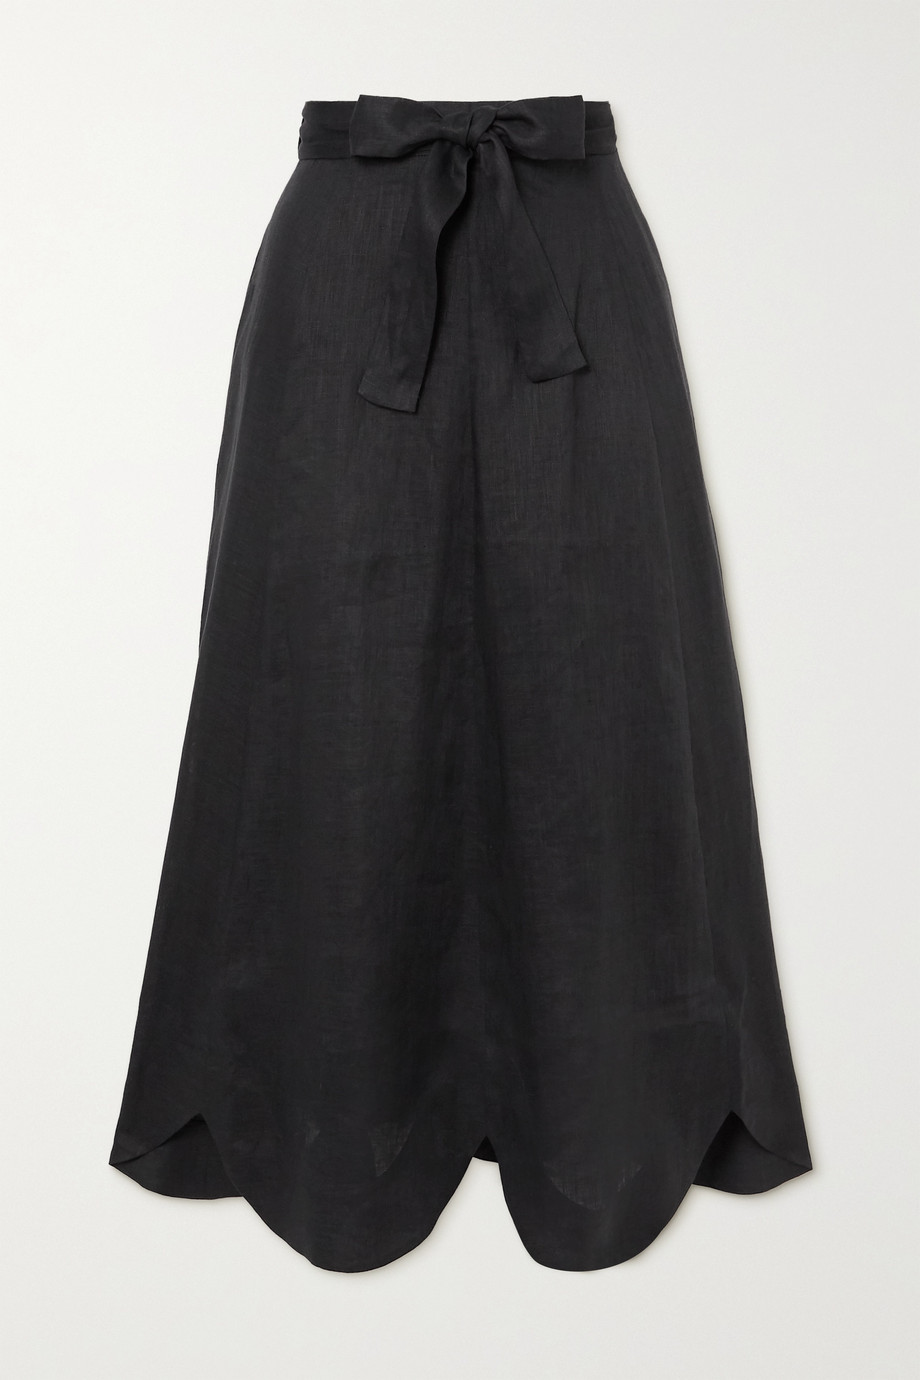 Zimmermann Riders belted scalloped linen midi skirt